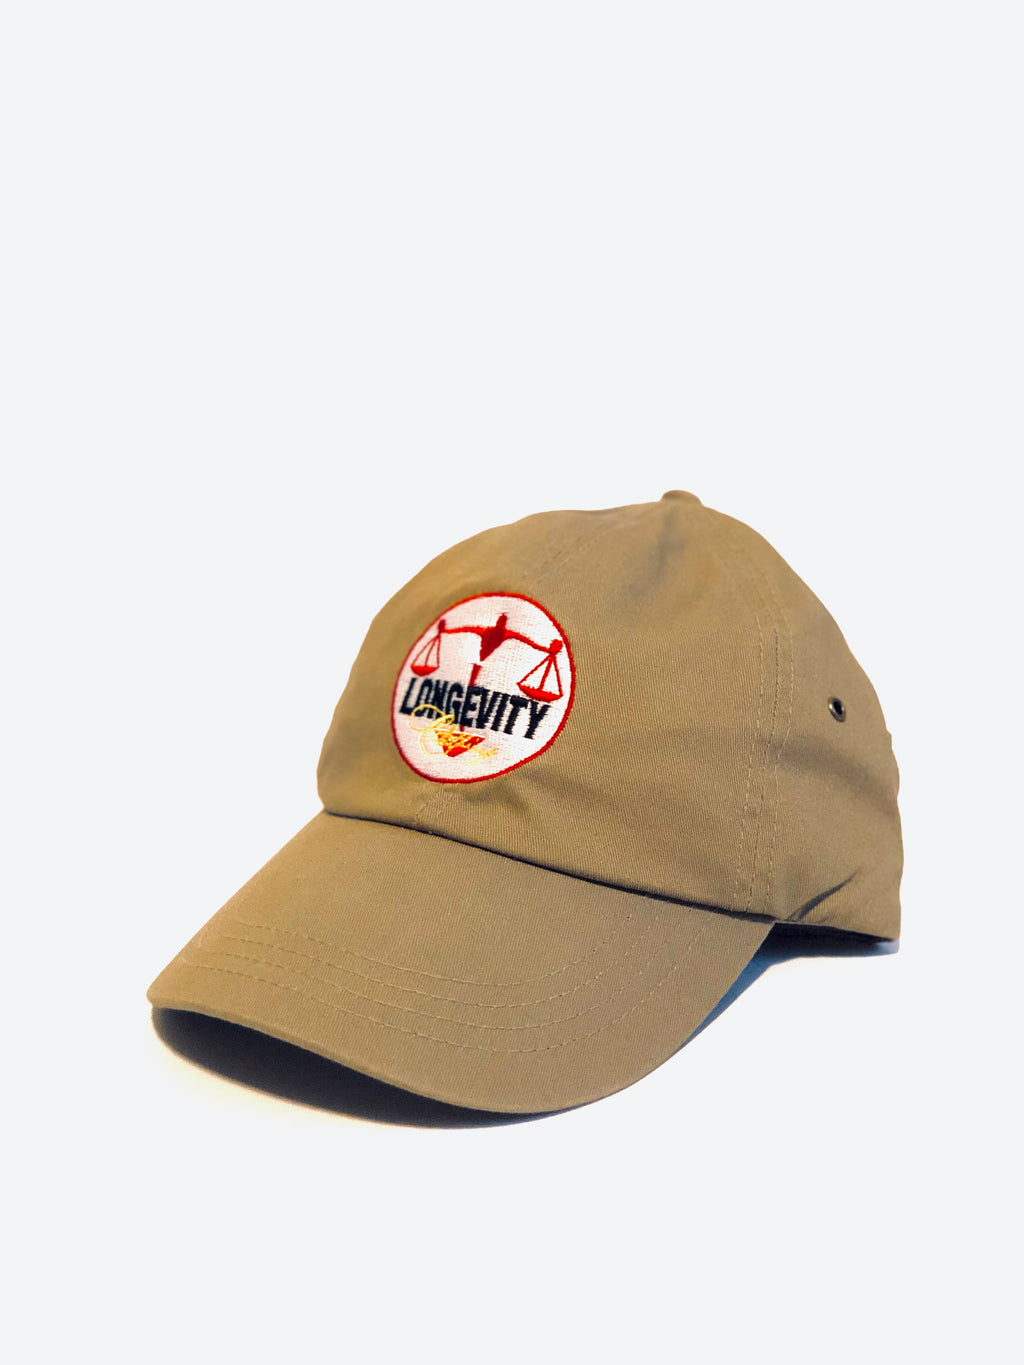 Longevity Clothing Dad Hat